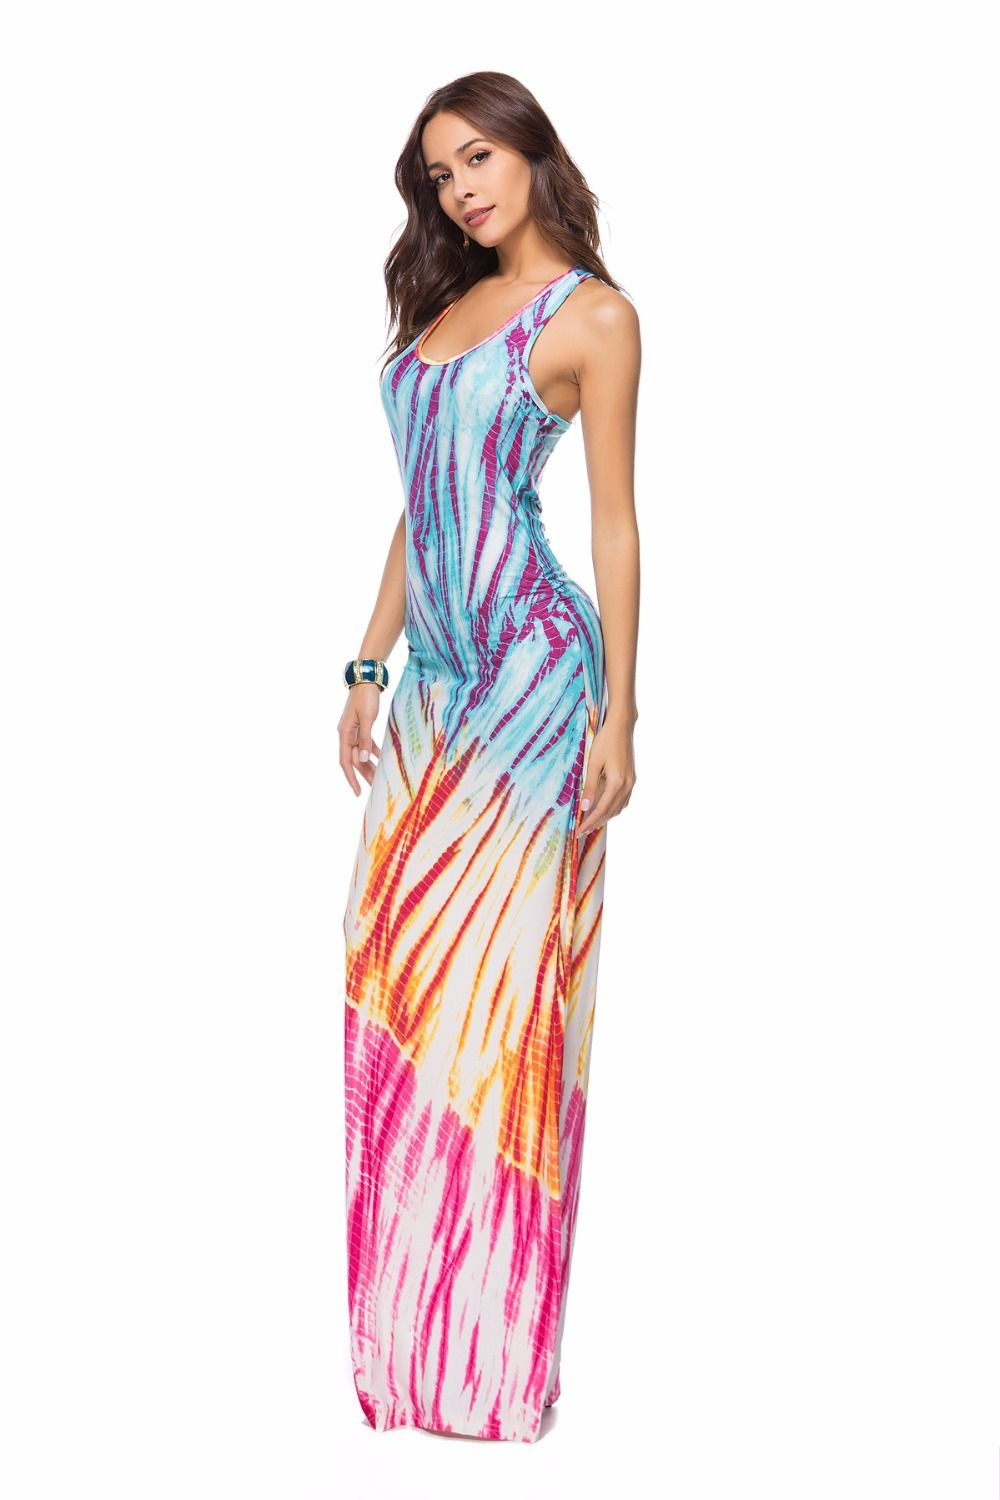 b4d2eb840a0 Plus Size Dresses For women 4xl 5xl Sexy Colourful Sleeveless Casual Long  tank Dress Womens Clothing